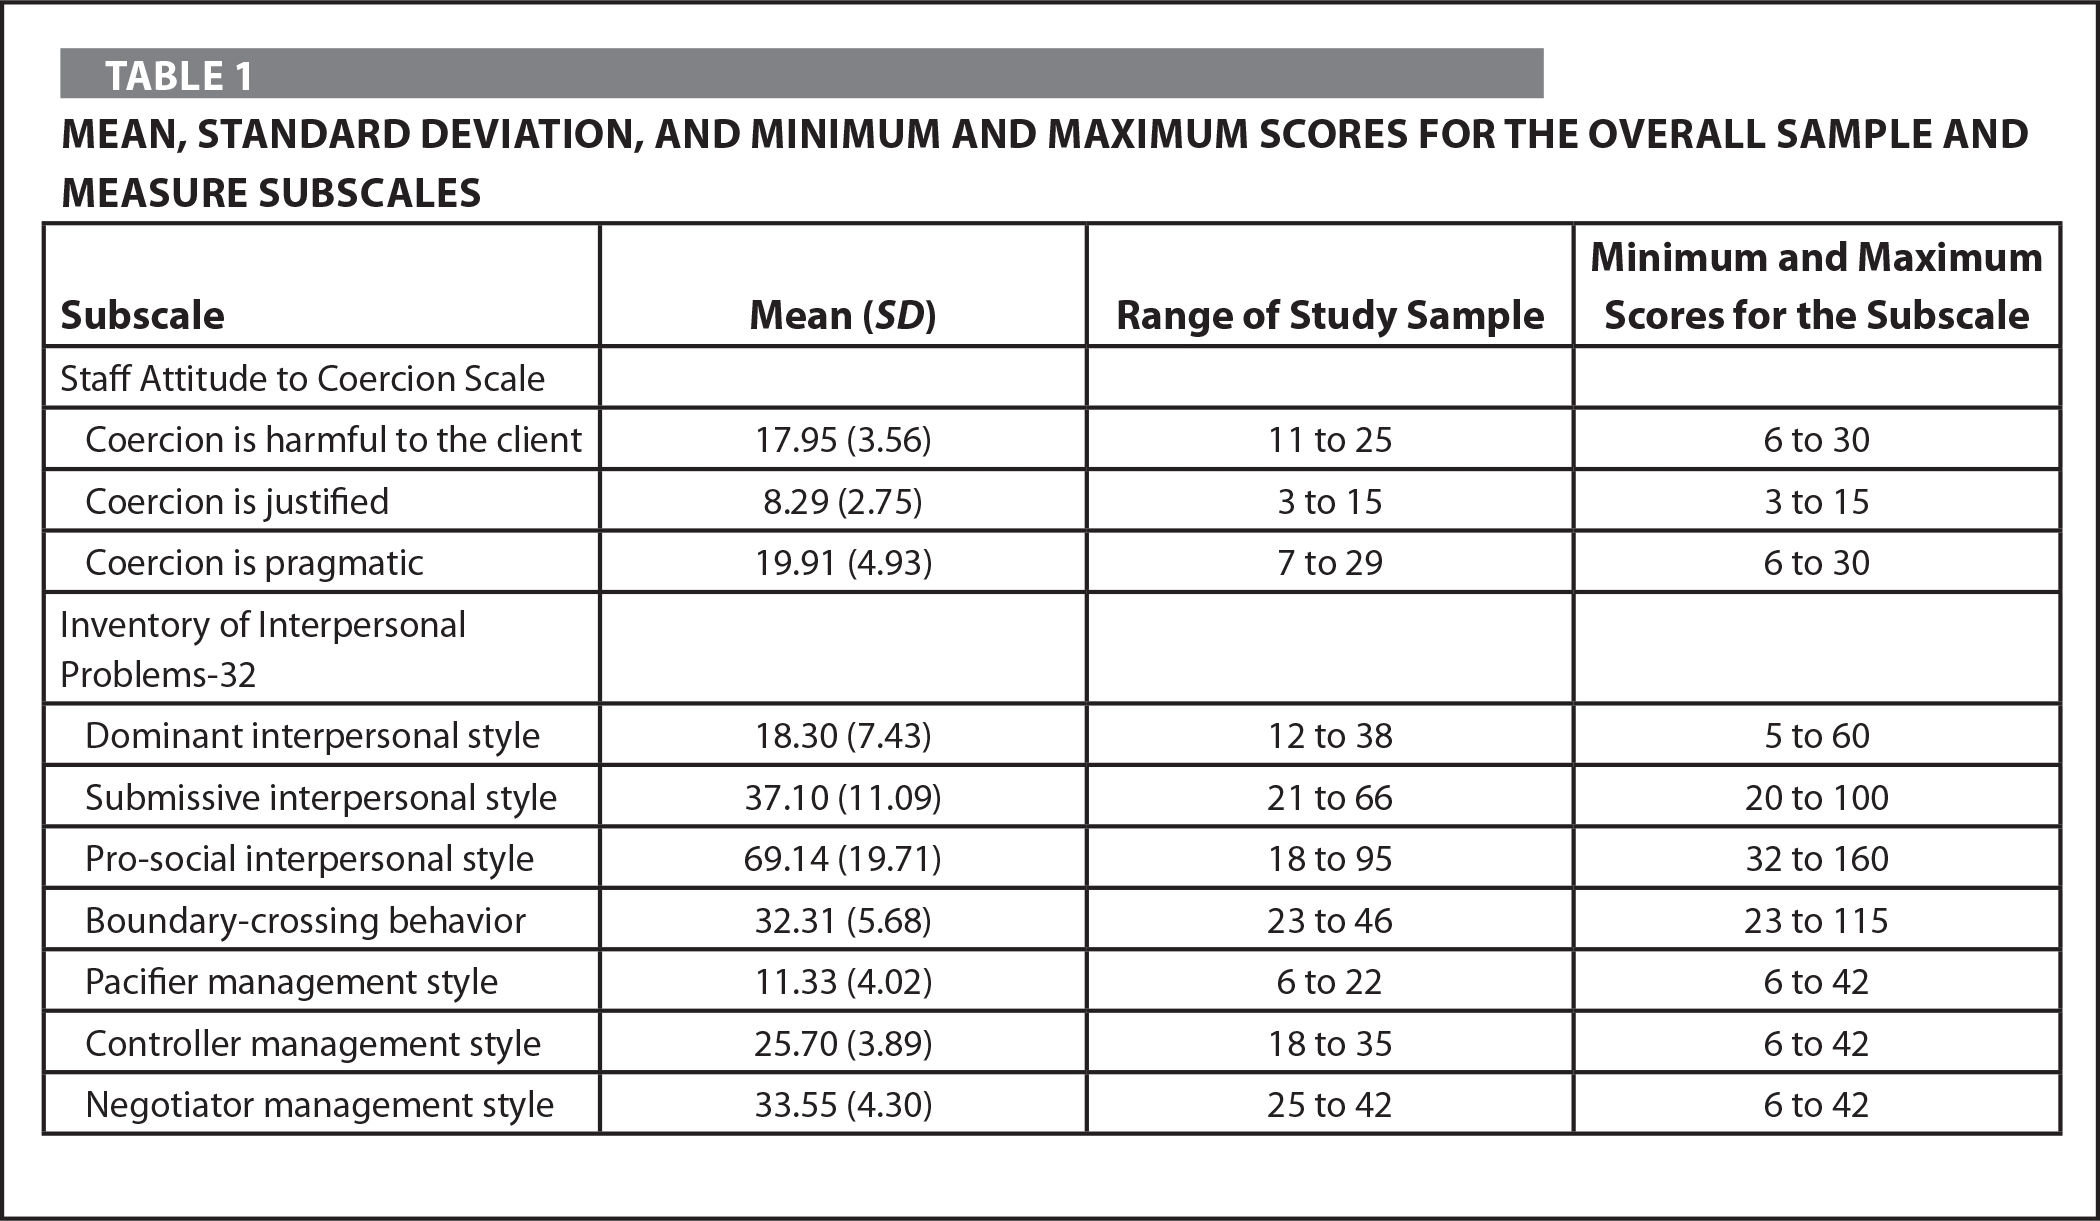 Mean, Standard Deviation, and Minimum and Maximum Scores for the Overall Sample and Measure Subscales